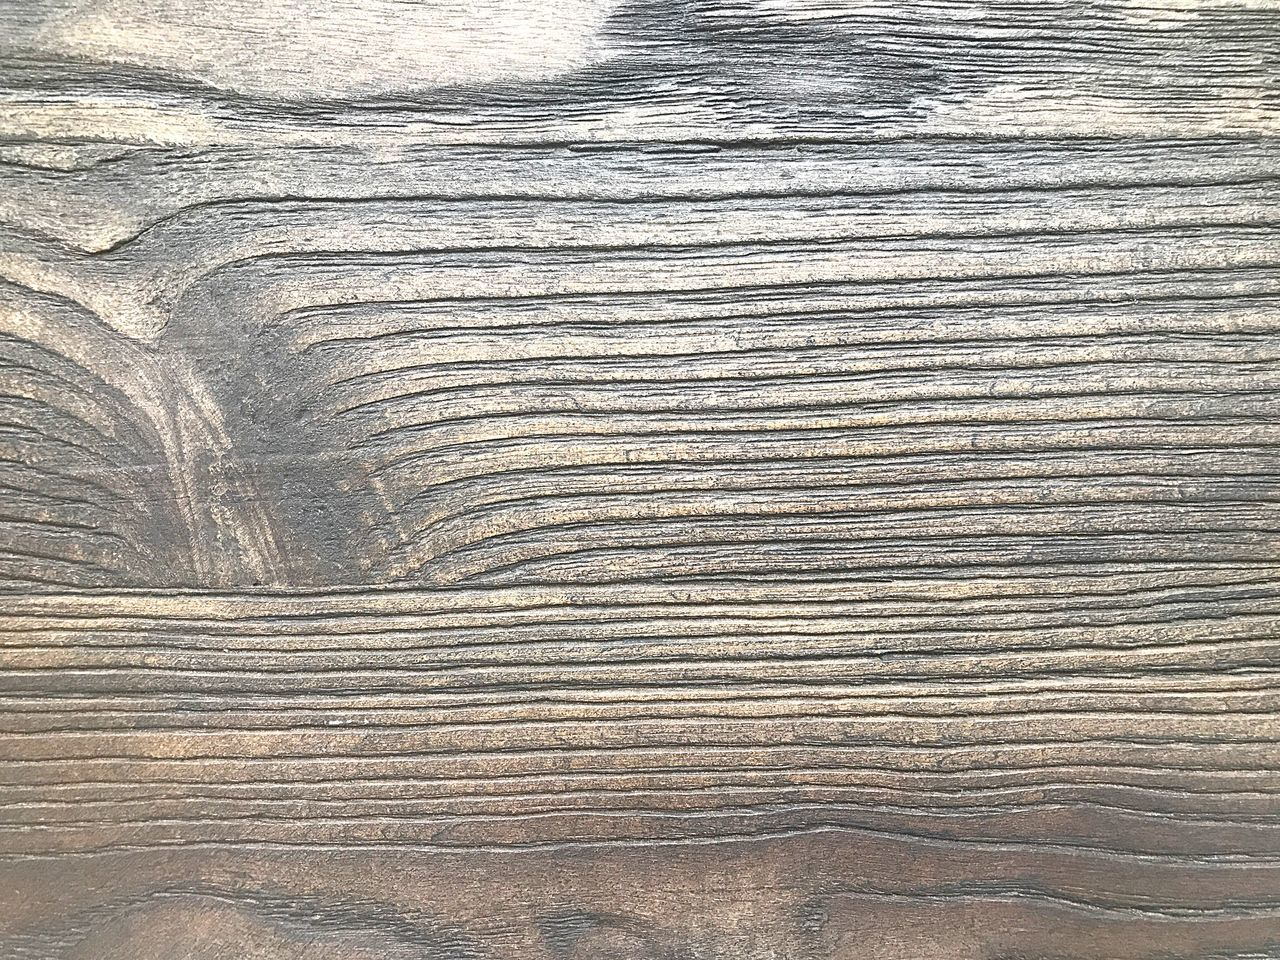 Textured  Backgrounds Pattern Full Frame Nature Wood Grain Wood - Material No People Abstract Wallpaper Outdoors Close-up Day Hardwood Wood Paneling Time